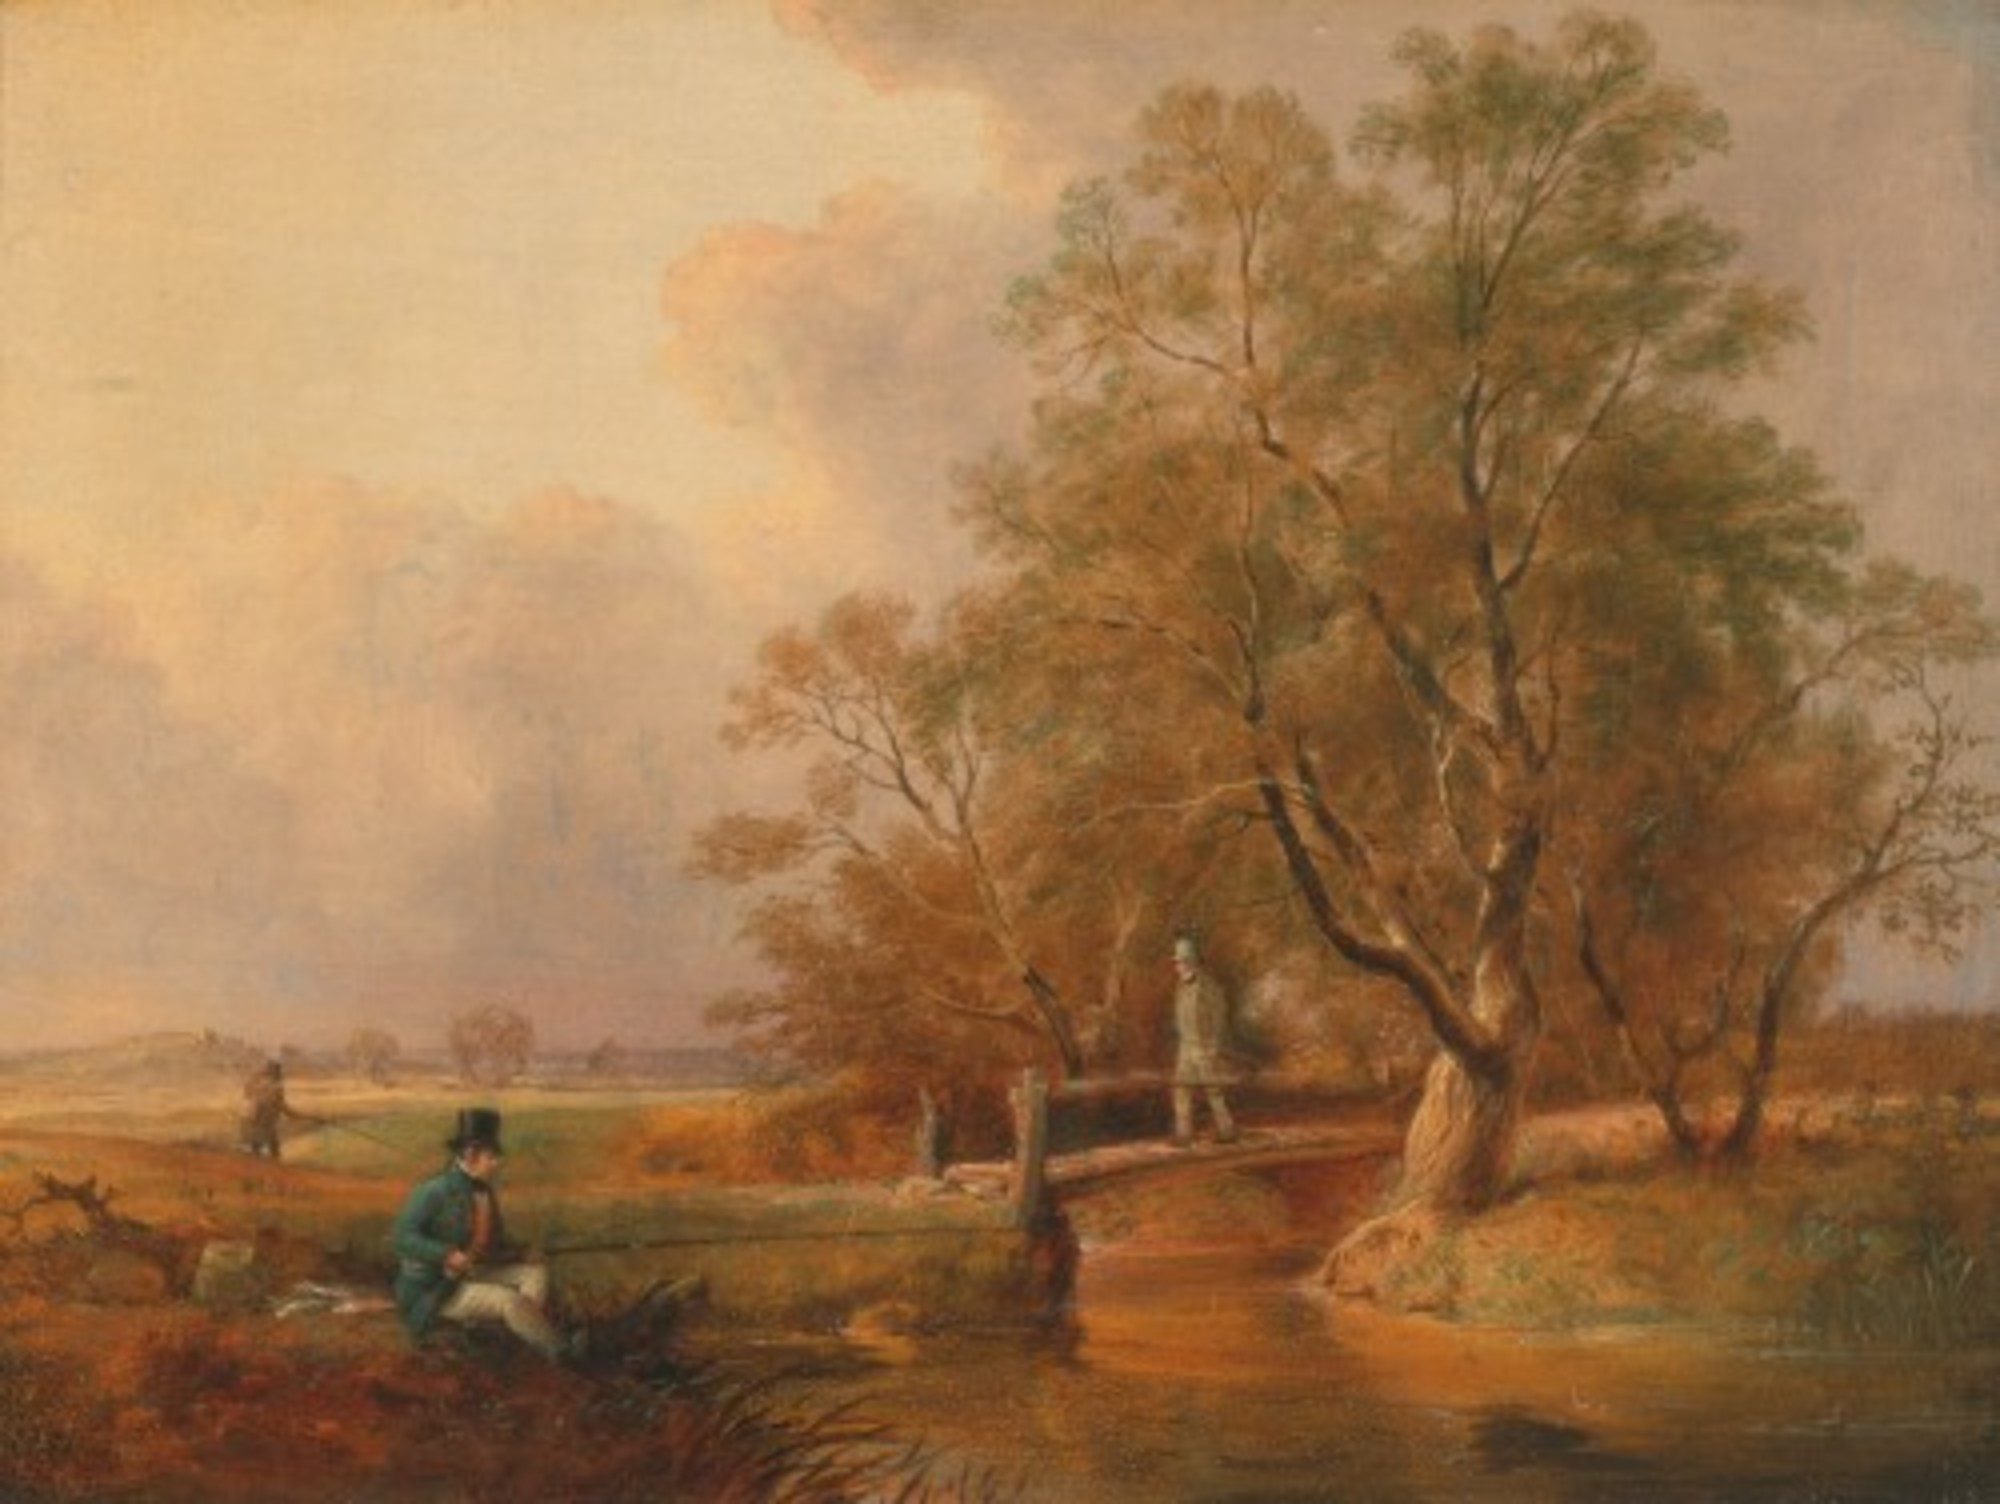 William-Jones---Fishing--Bottom-Fishing---Google-Art-Project.jpg